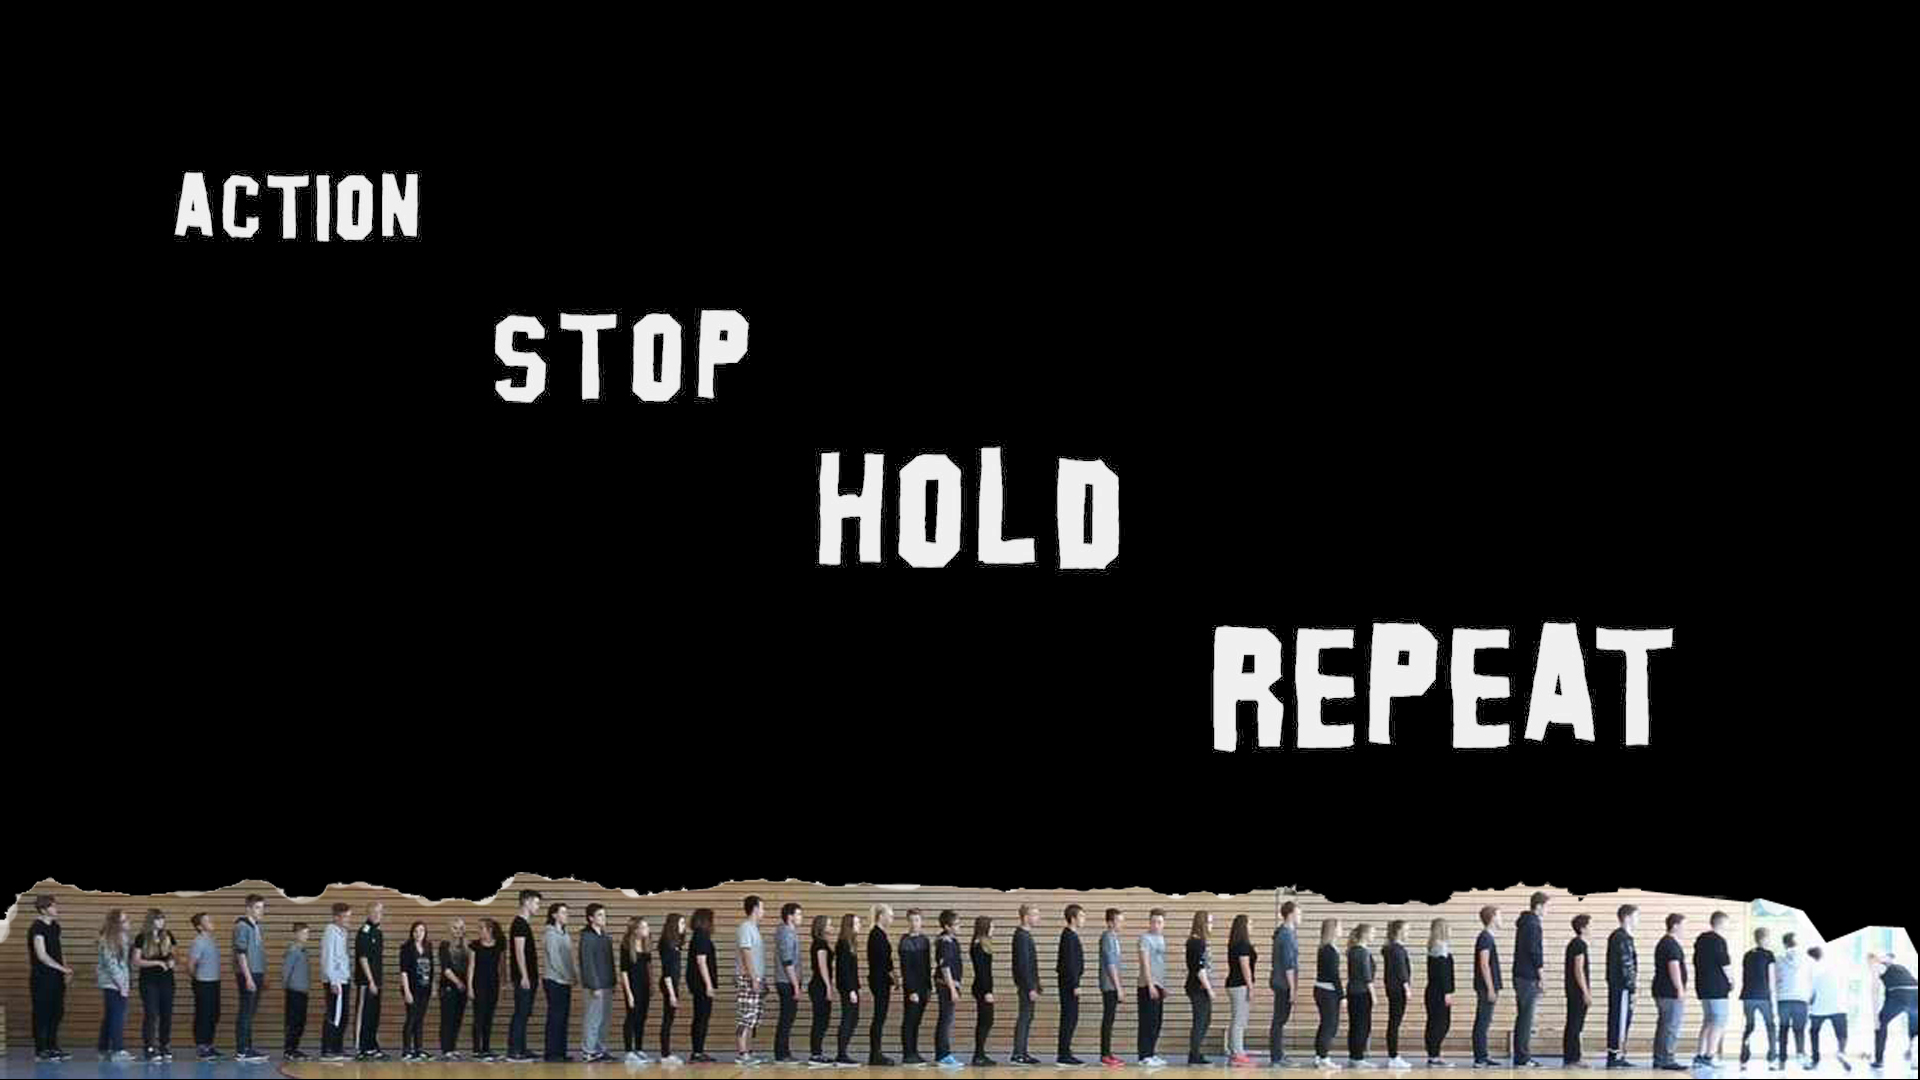 ACTION-STOP-HOLD-REPEAT